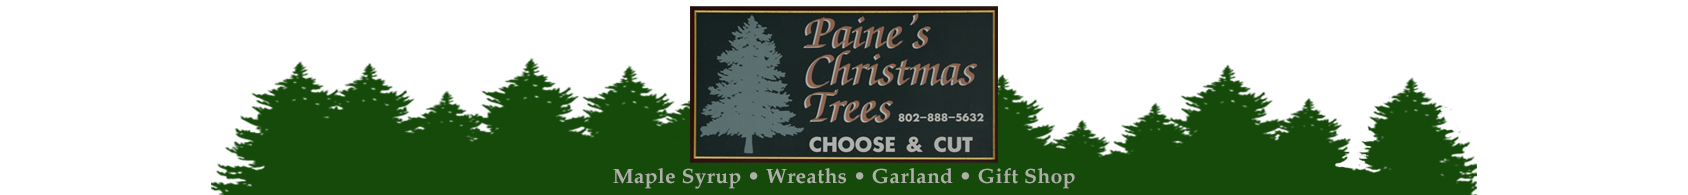 Paine's Christmas Trees LLC